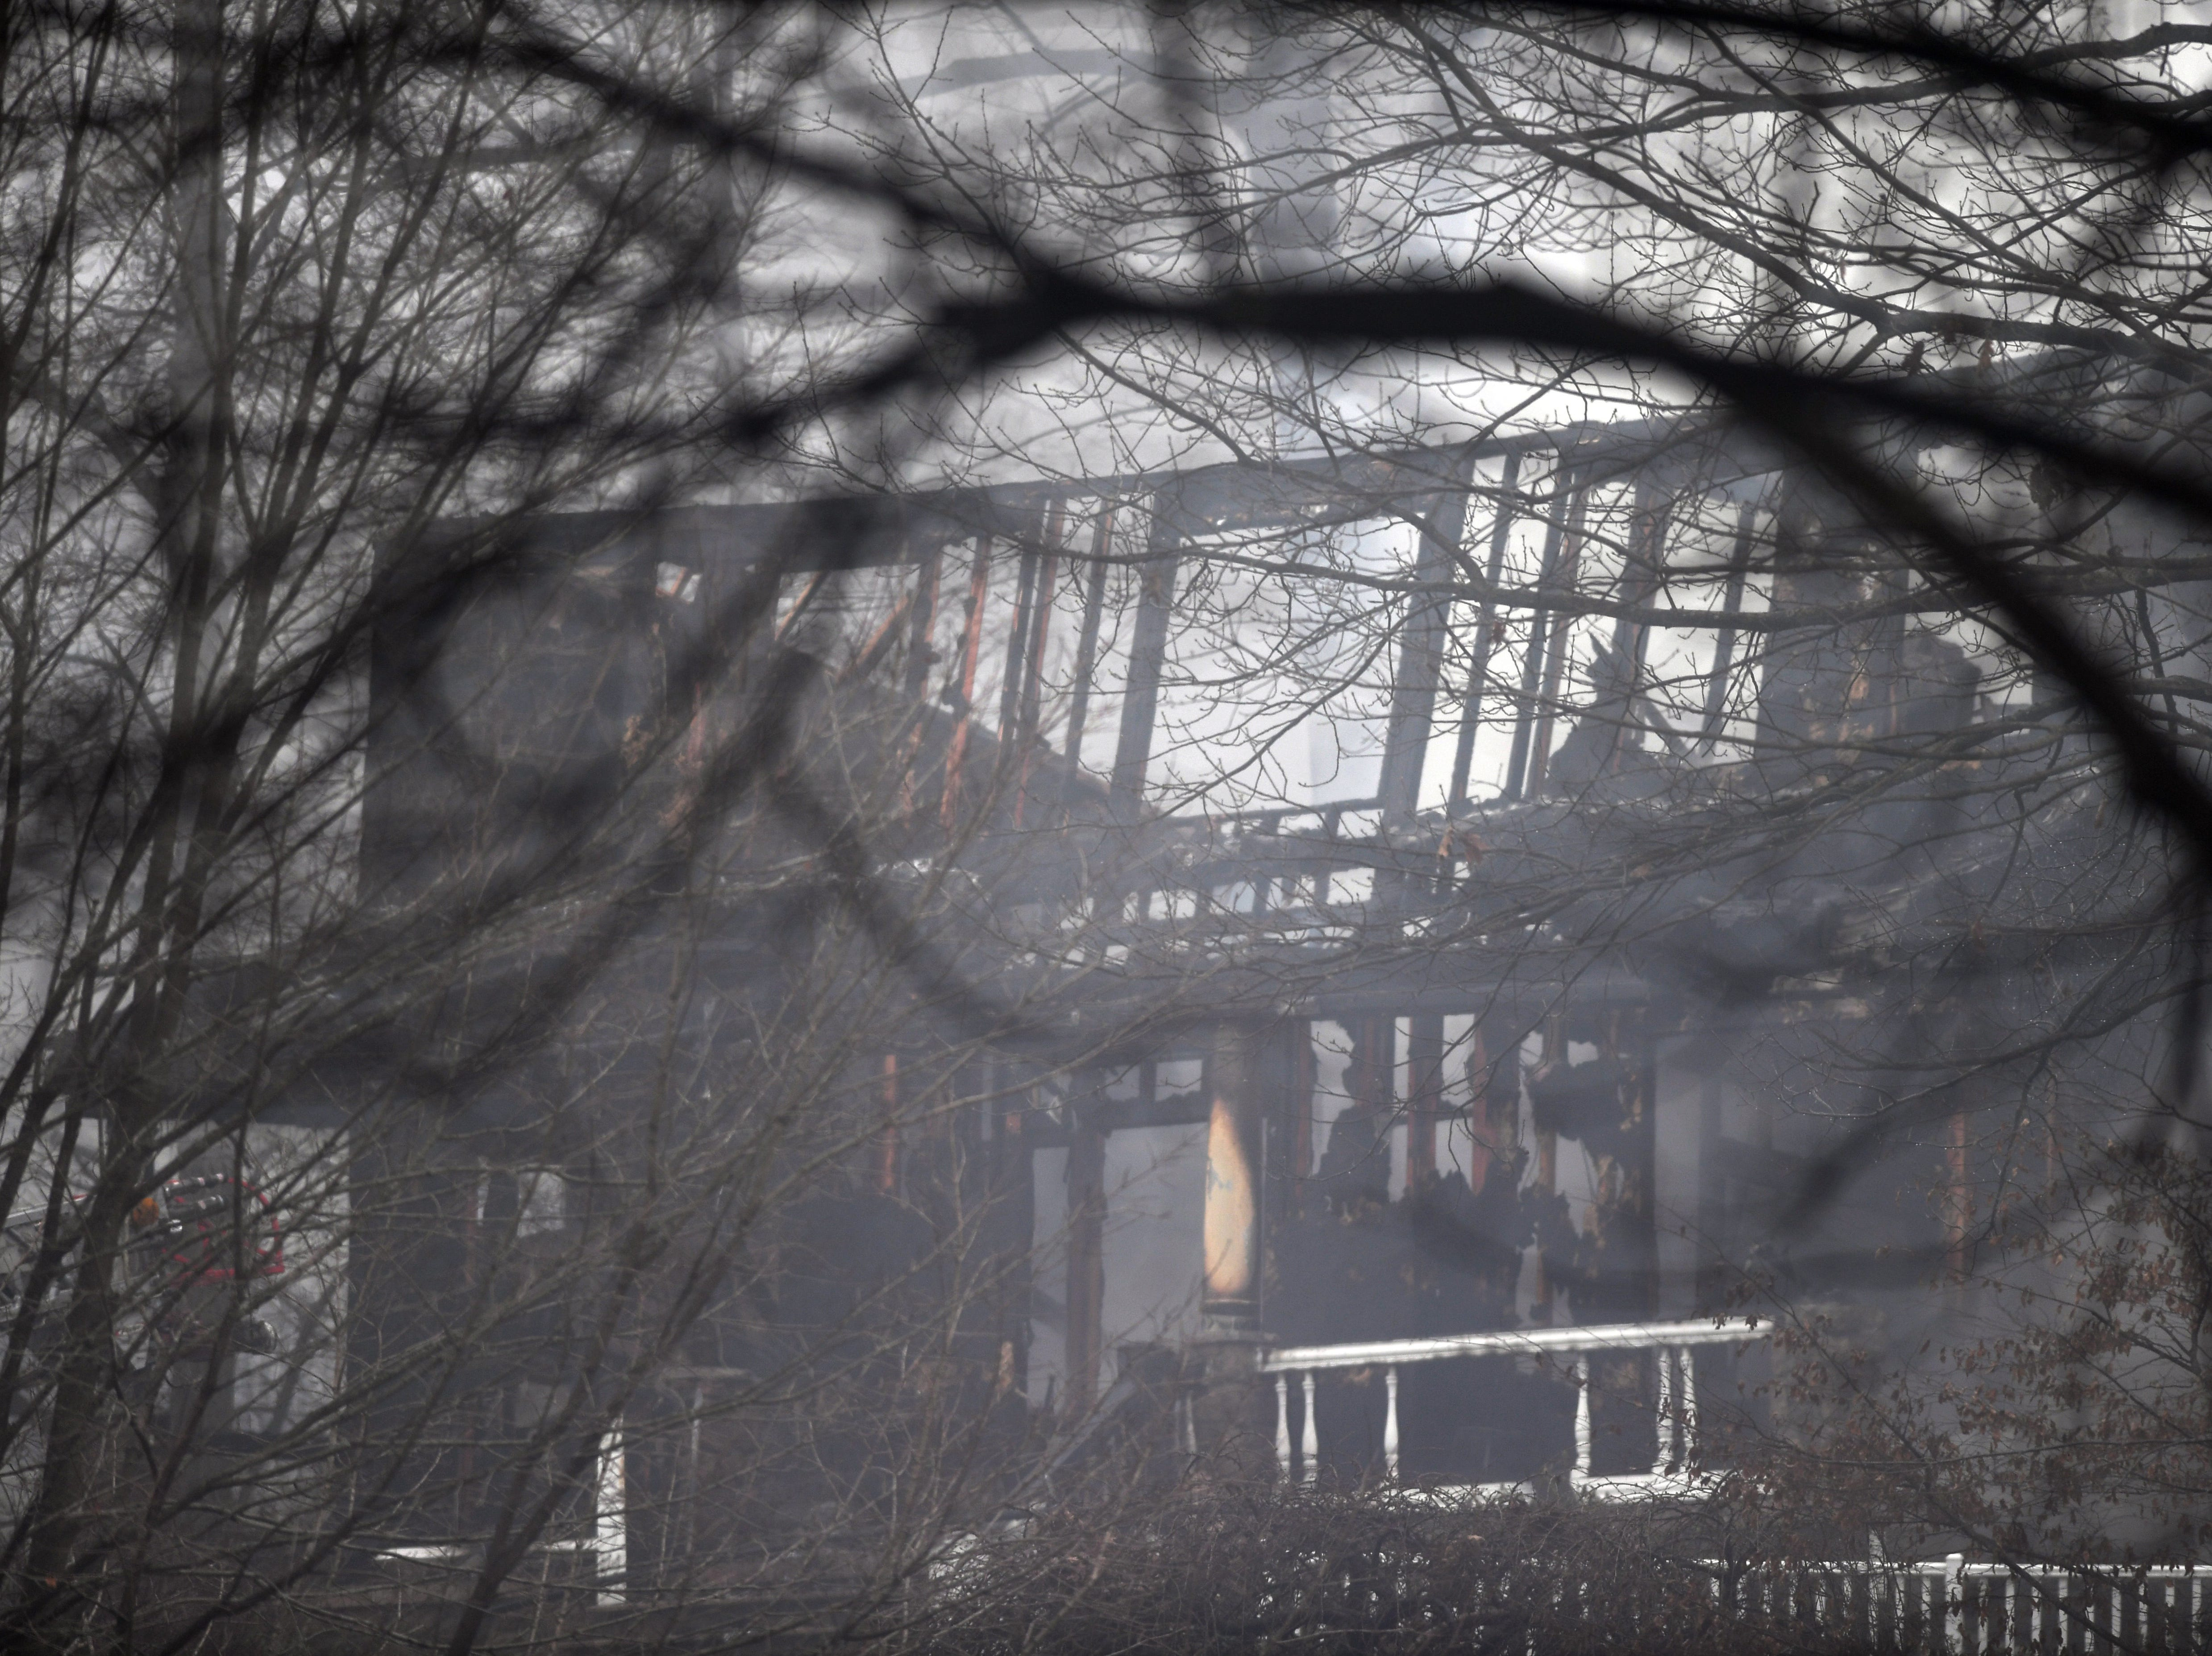 Fire on Skyview Rd in Wayne on Tuesday, January 8, 2019.